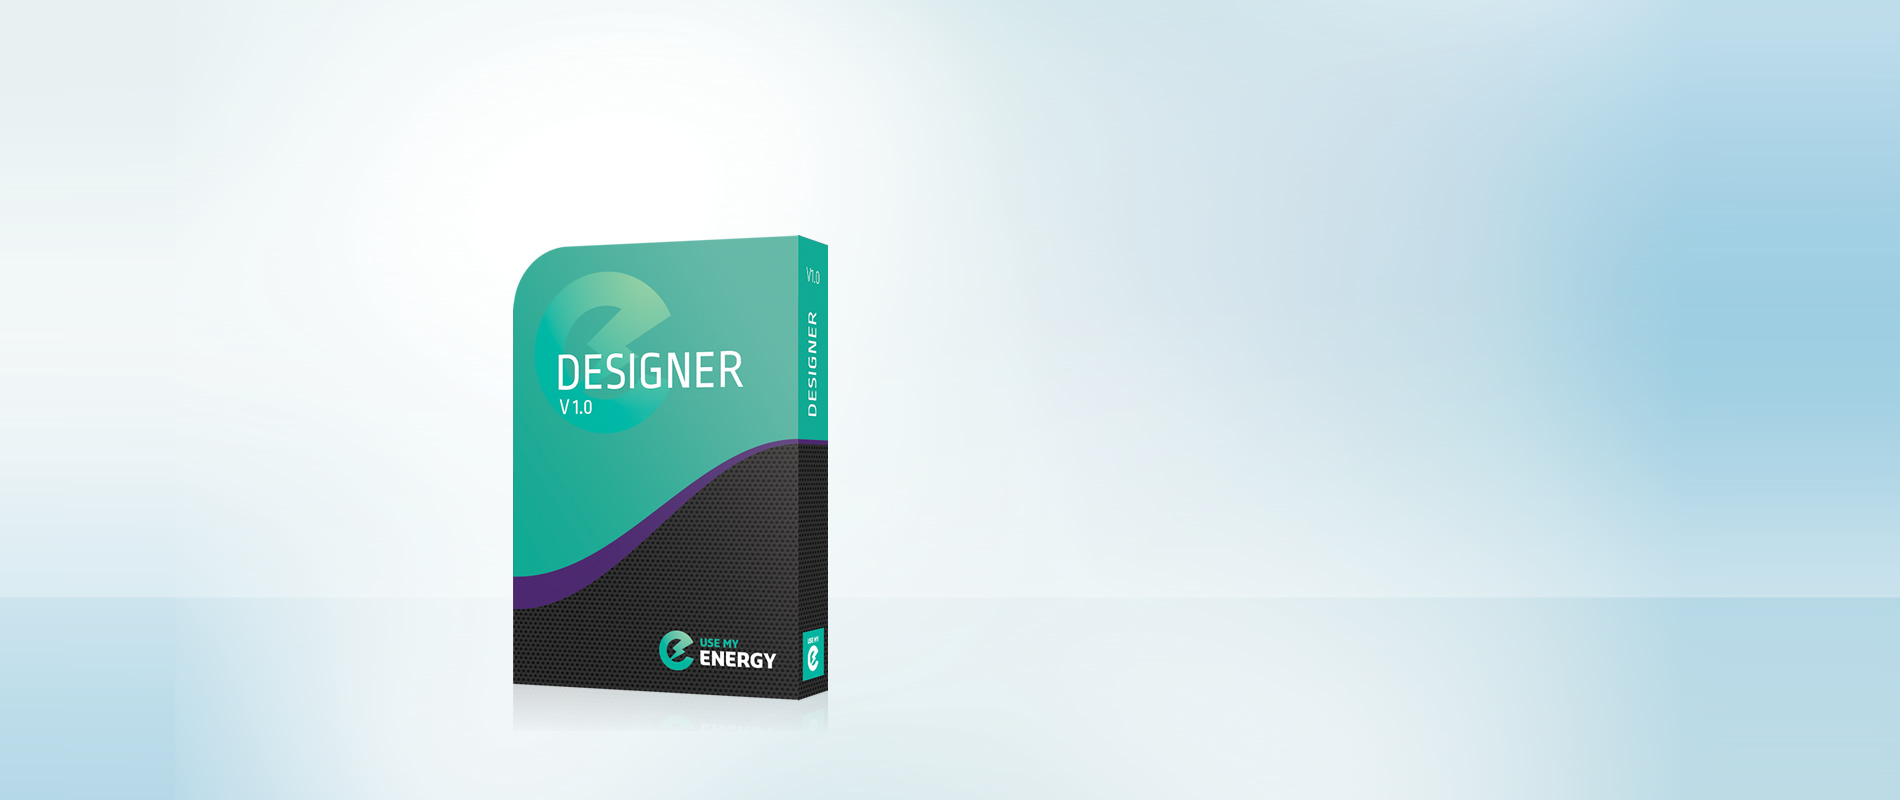 Designer-Packaging-Big-1900x800